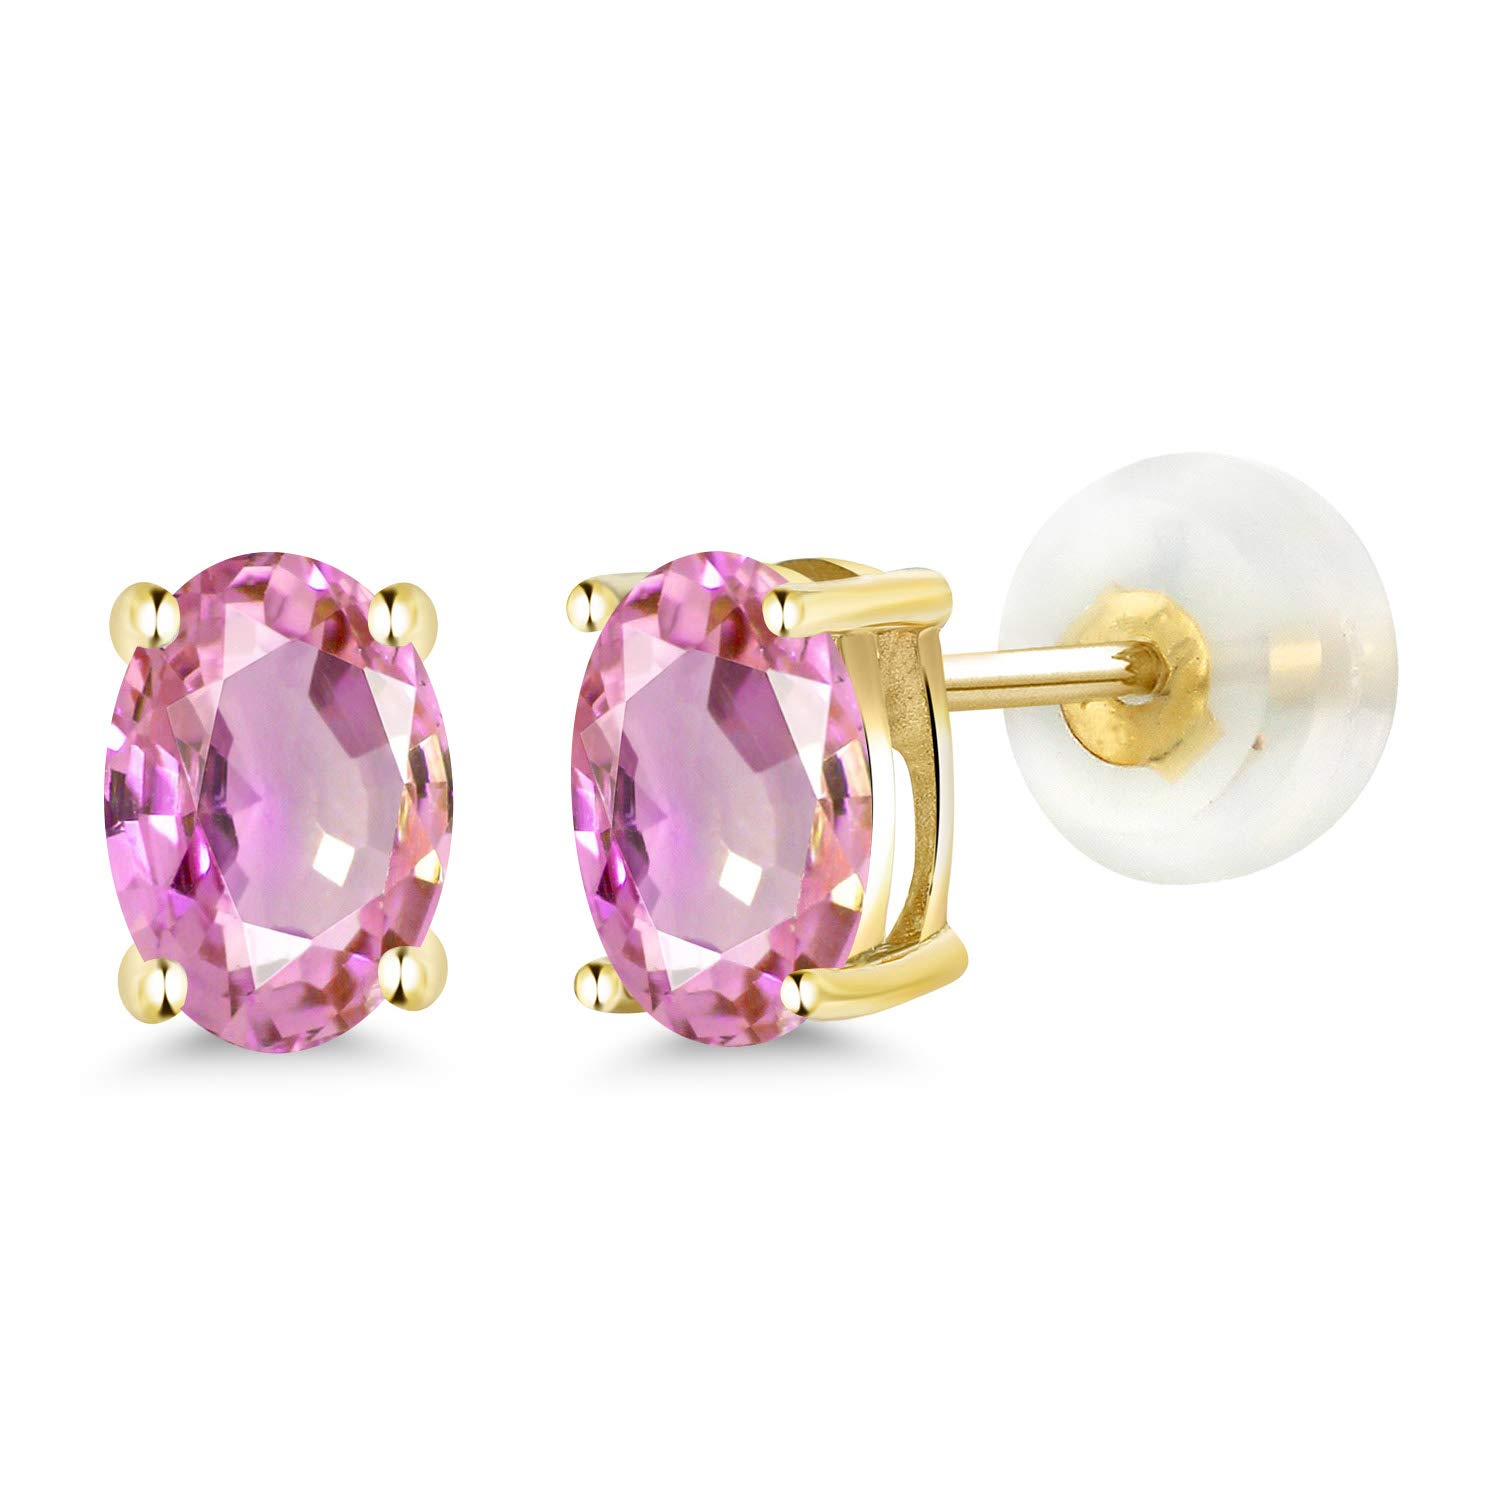 Gem Stone King 1.10 Ct Oval 6x4mm Pink Sapphire 14K Yellow Gold Stud Earrings